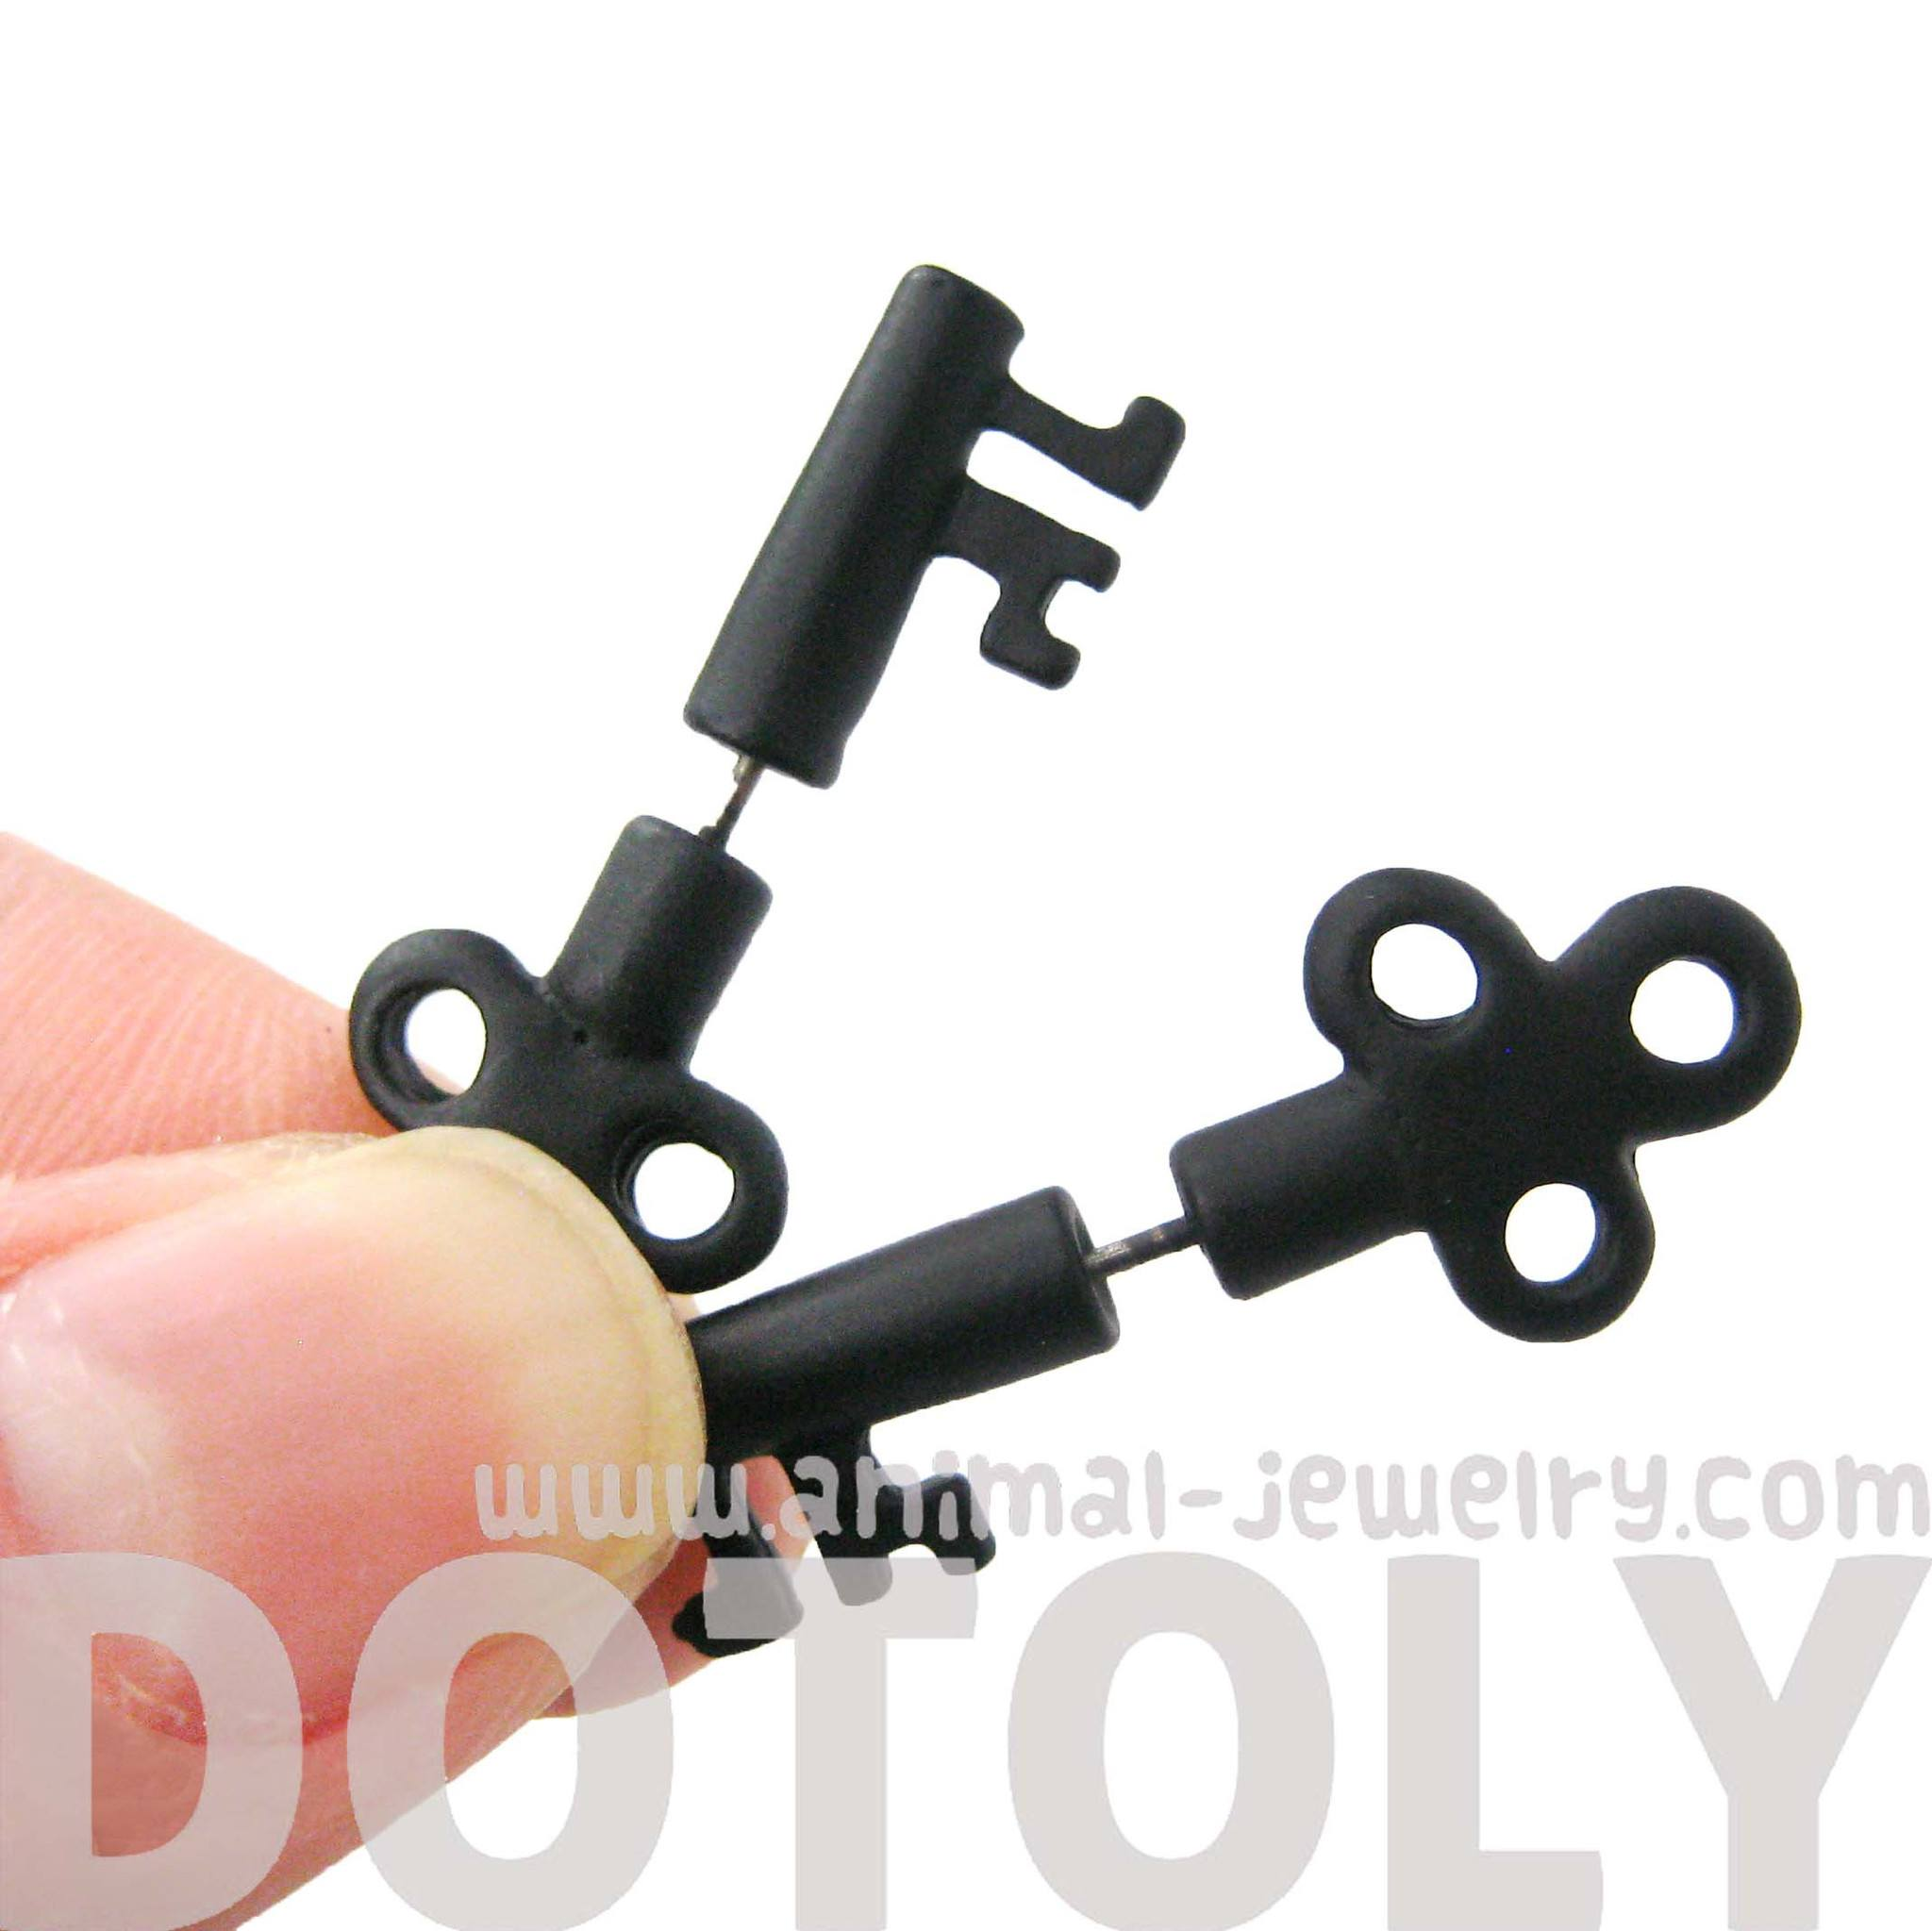 fake-gauge-earrings-skeleton-key-shaped-faux-plug-stud-earrings-in-black